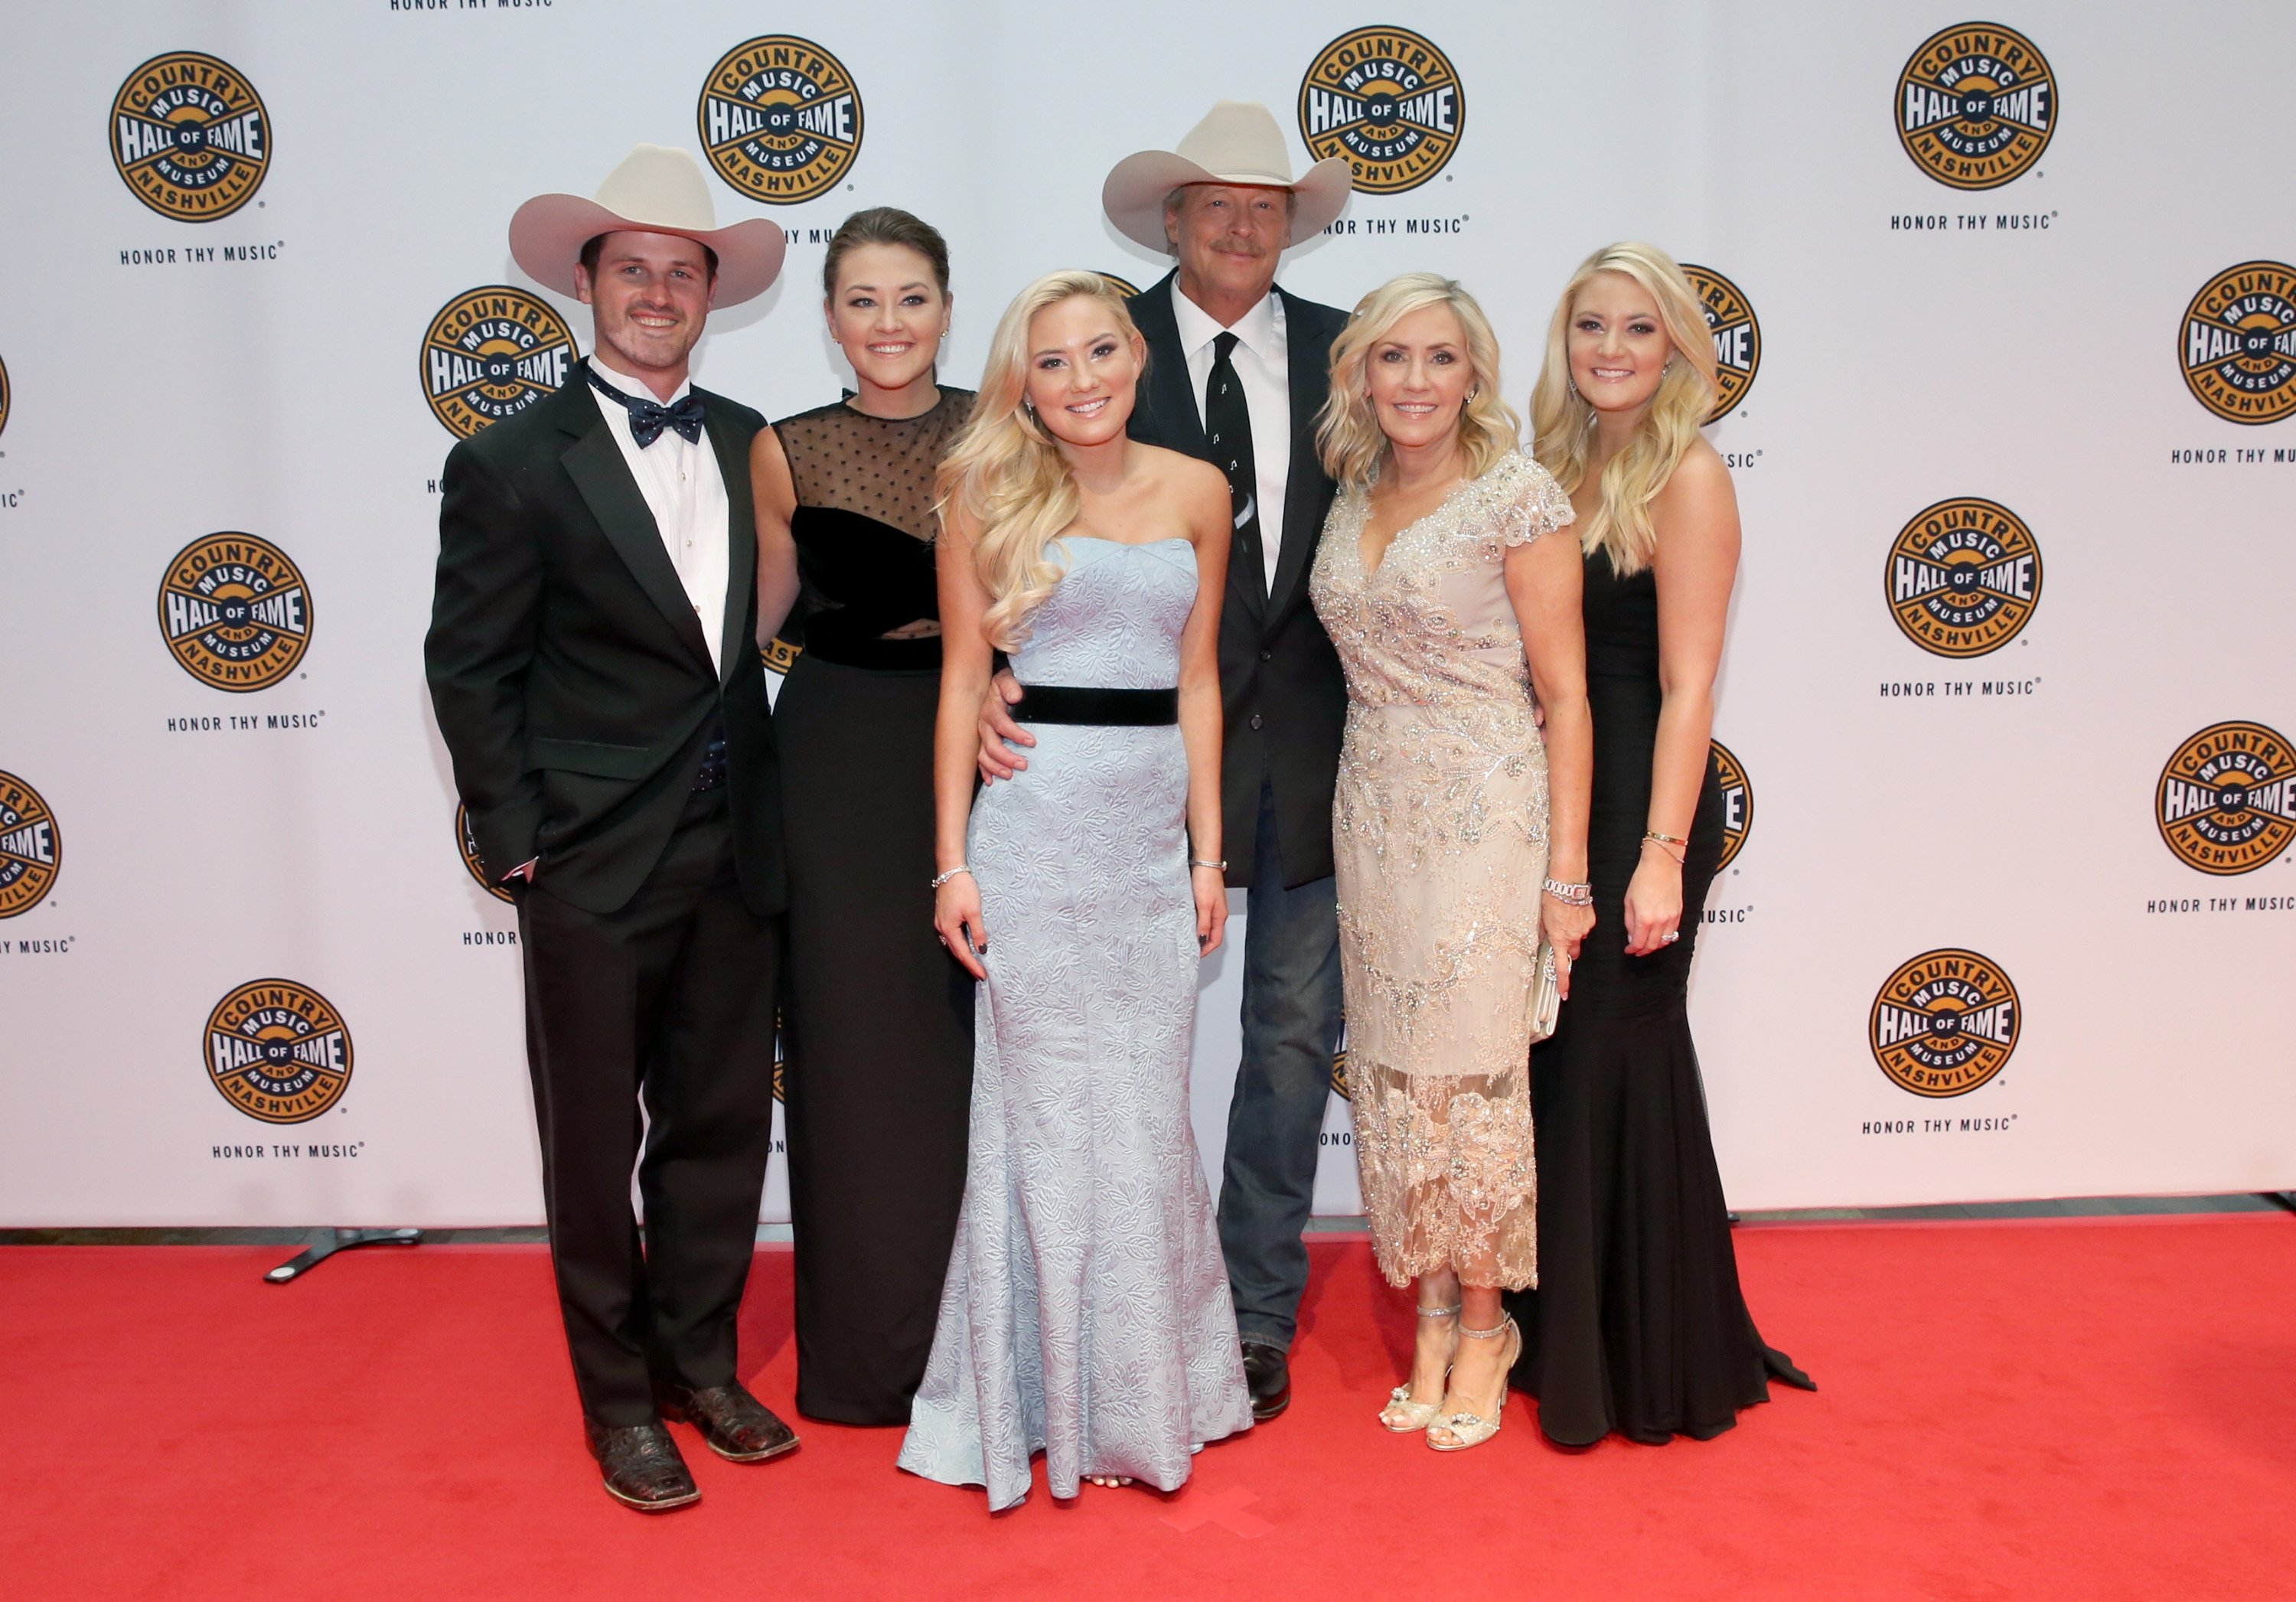 Alan Jackson and family attend the Country Music Hall of Fame in Nashville, Tennessee on October 22, 2017 | Photo: Getty Images